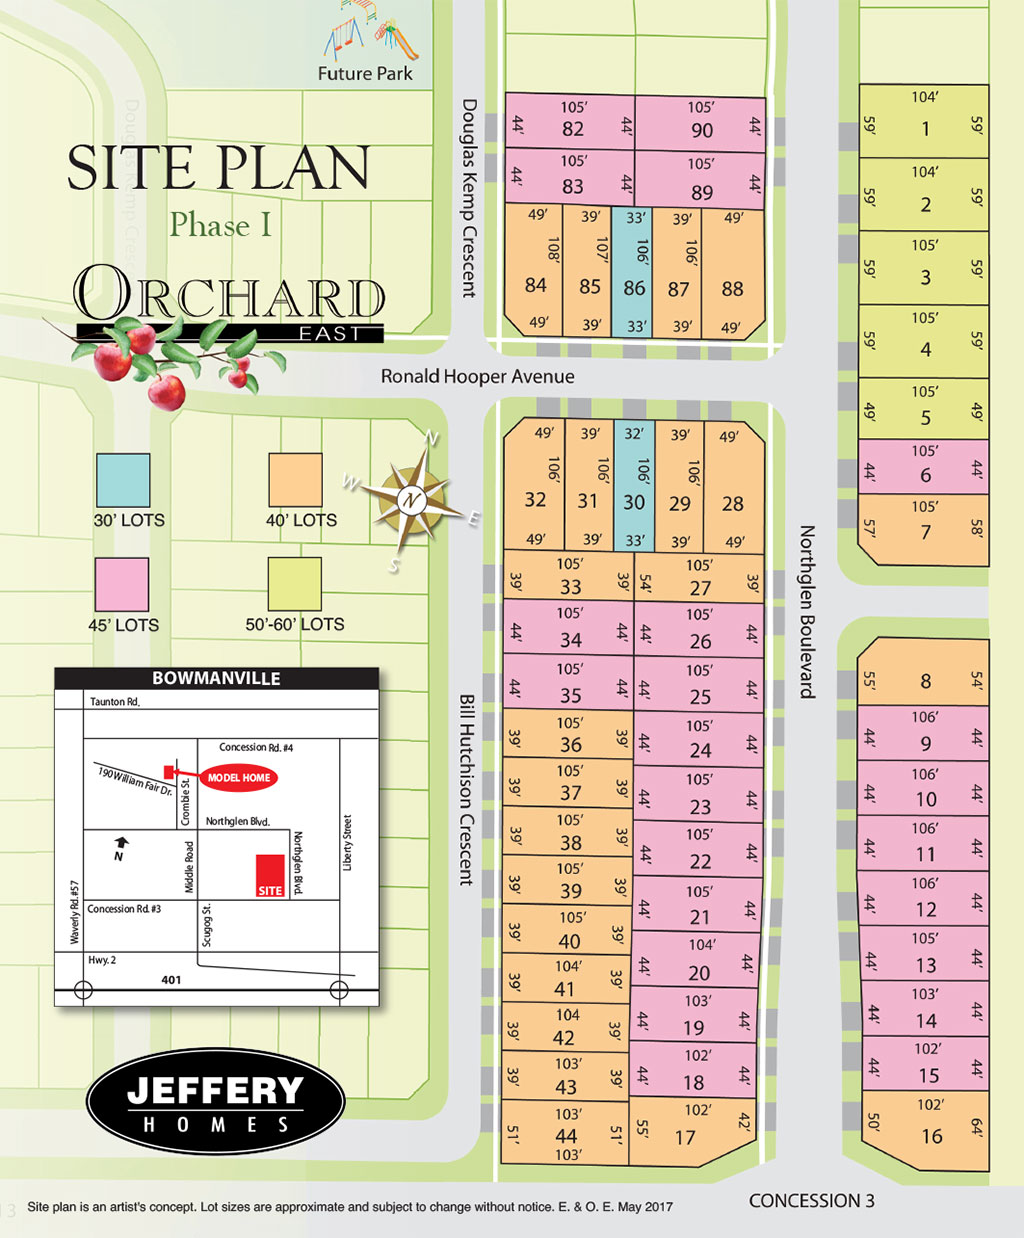 Orchard East Phase 1 Siteplan